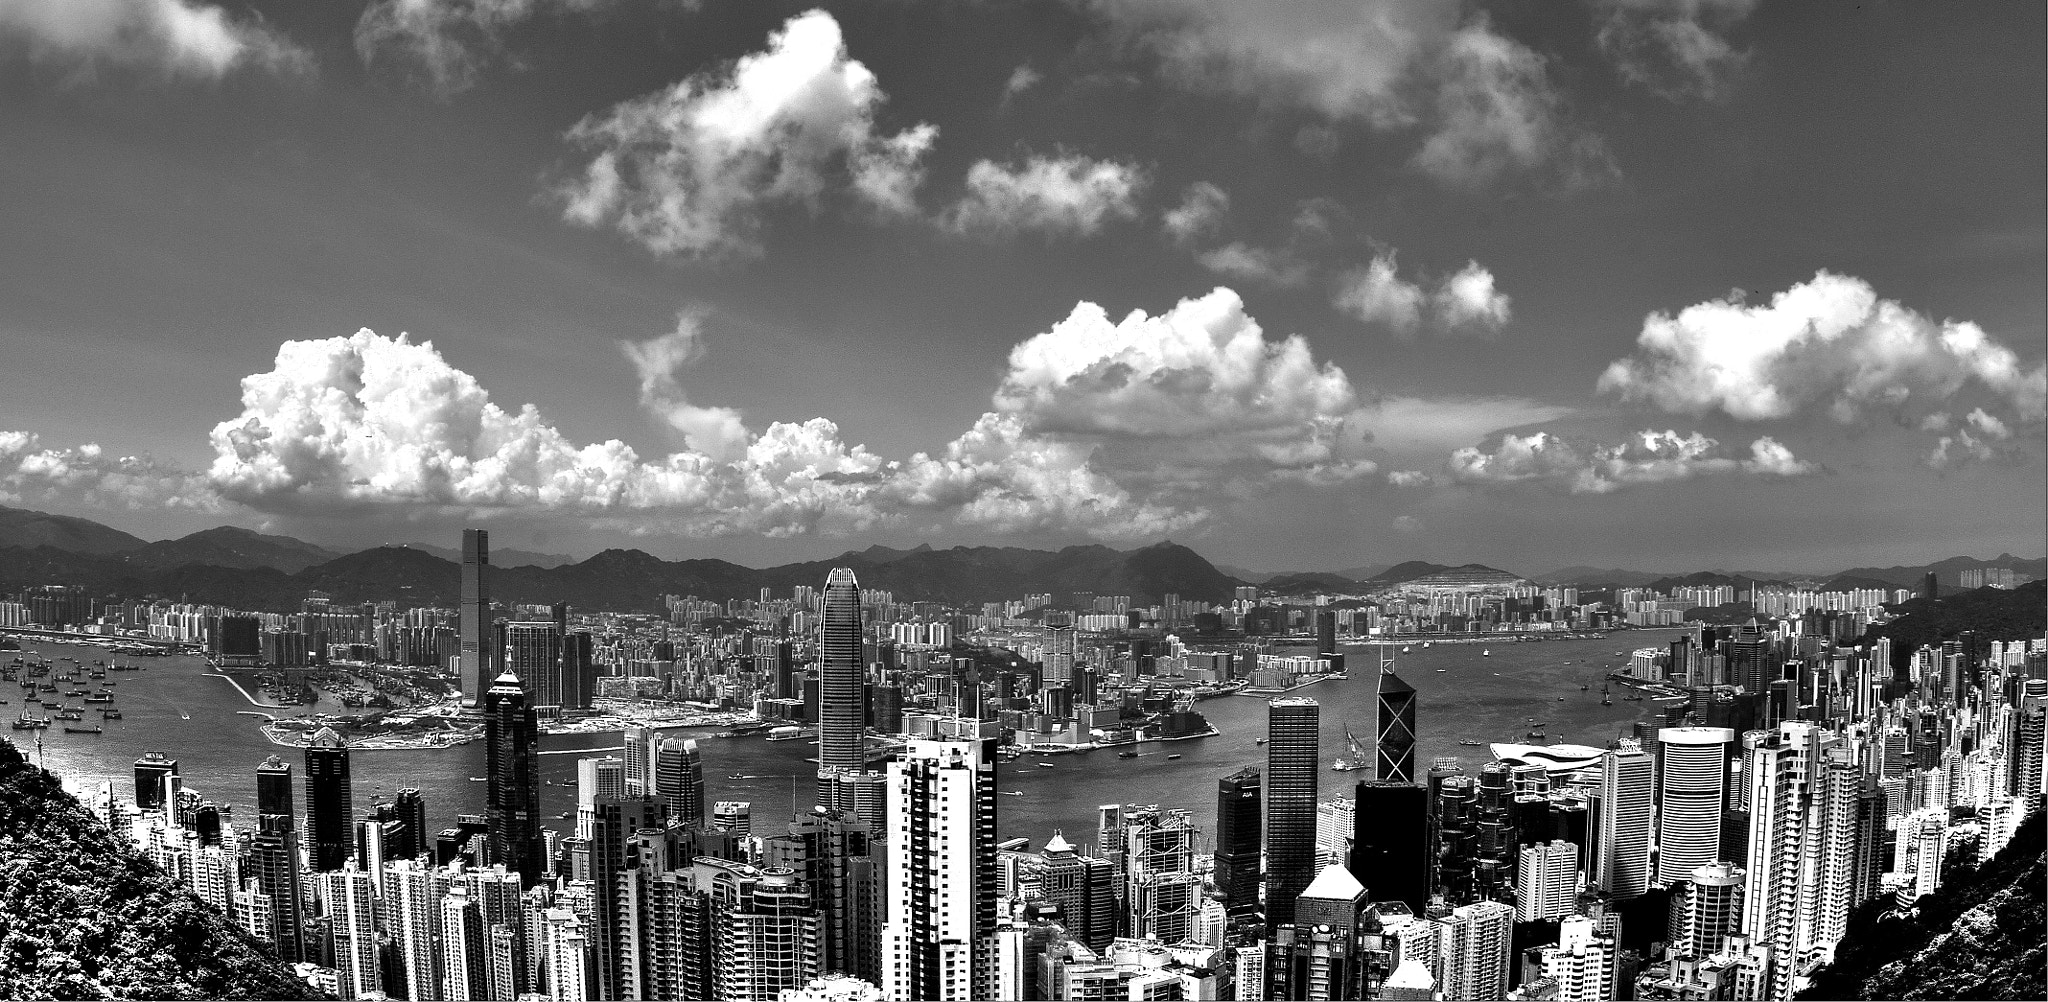 Photograph The Sky Scrapers City by Noel Menassa on 500px